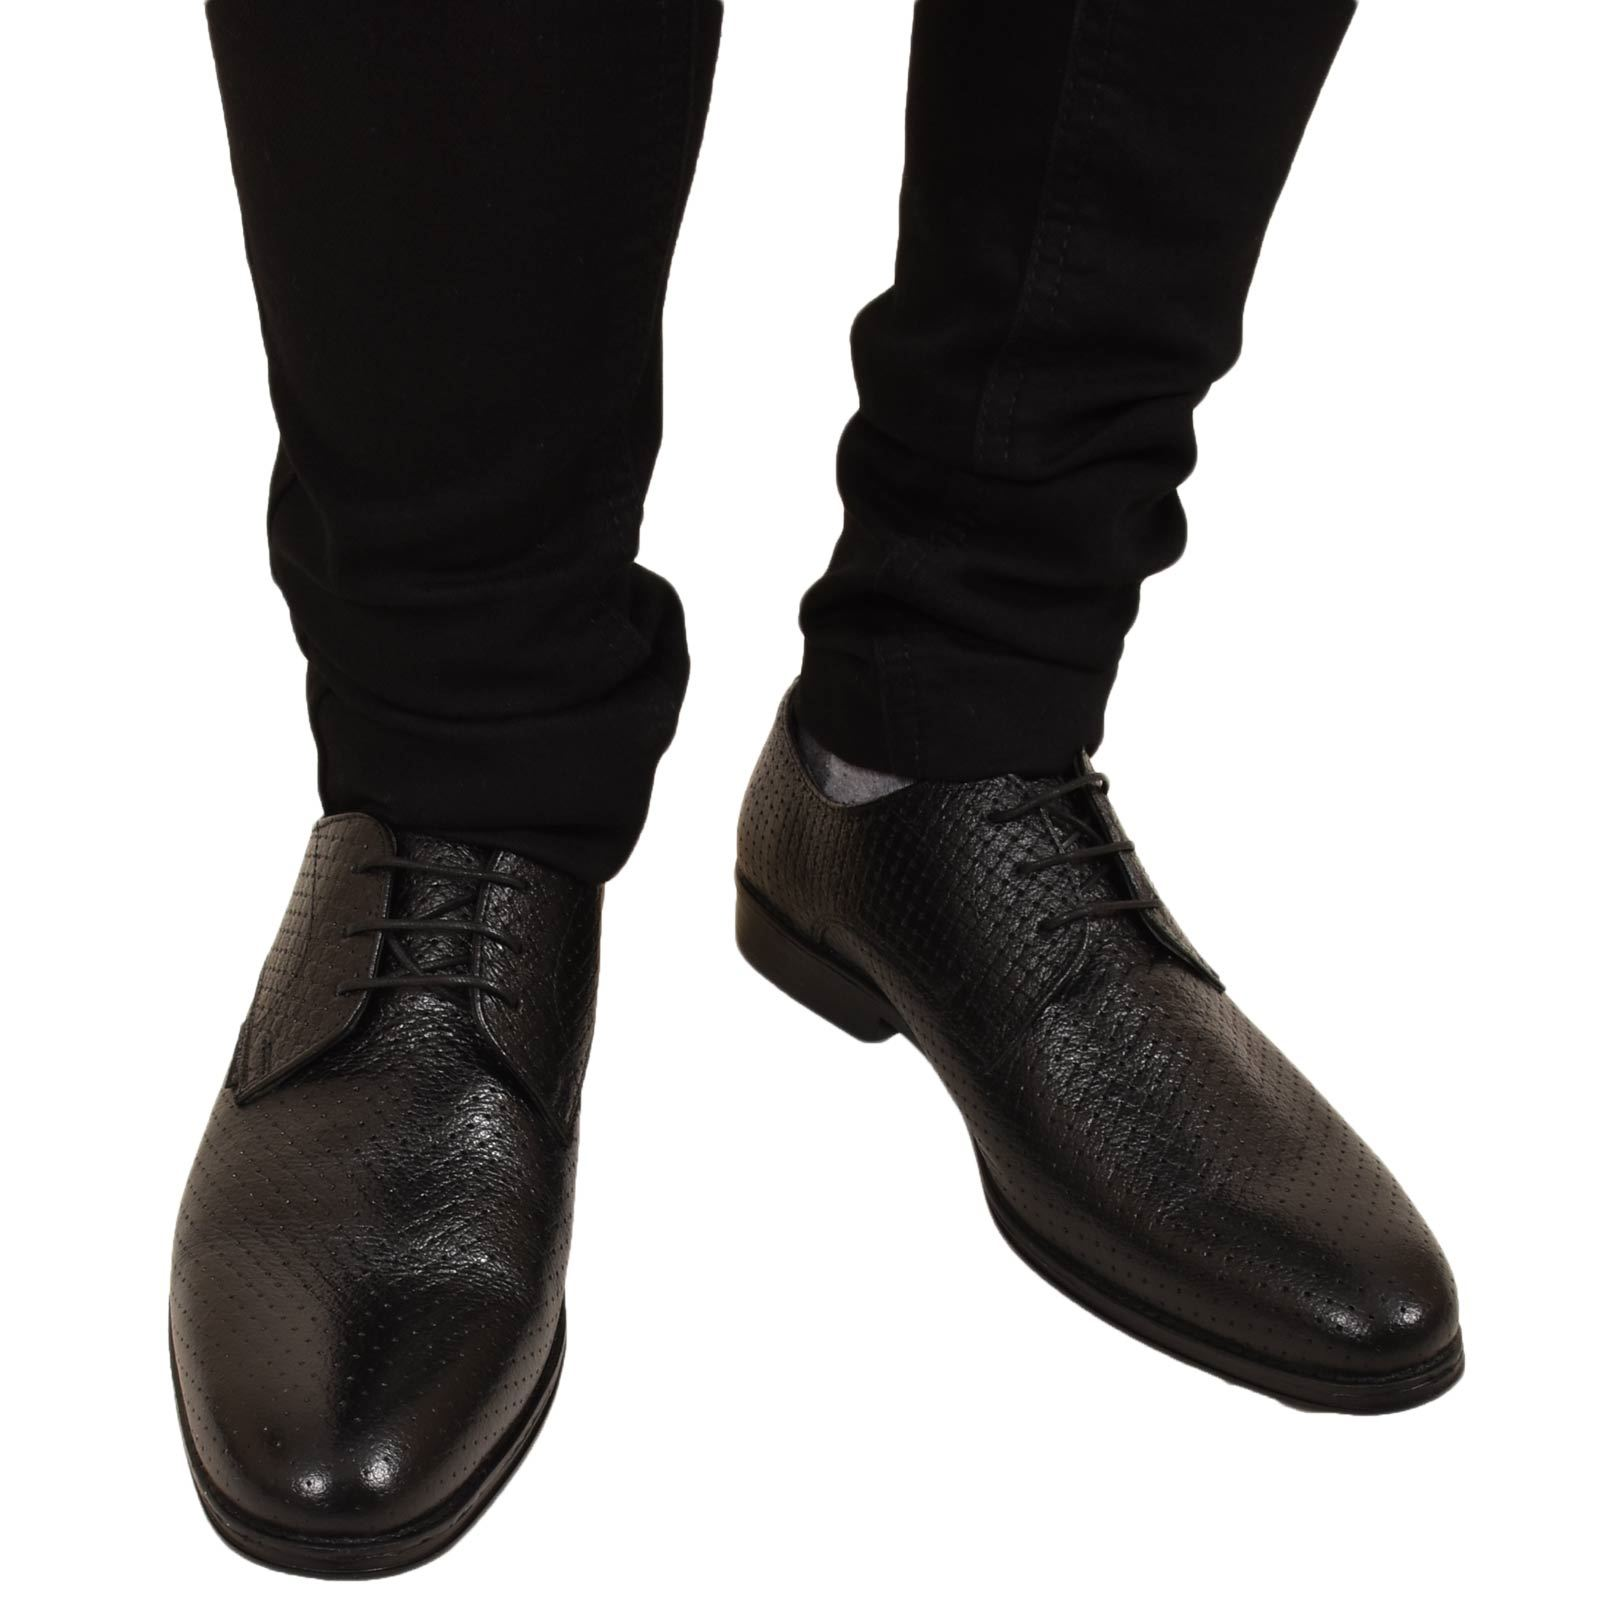 Mens-UK-Style-Leather-Lining-Formal-Office-Wedding-Smart-Work-Brogue-Shoes thumbnail 27